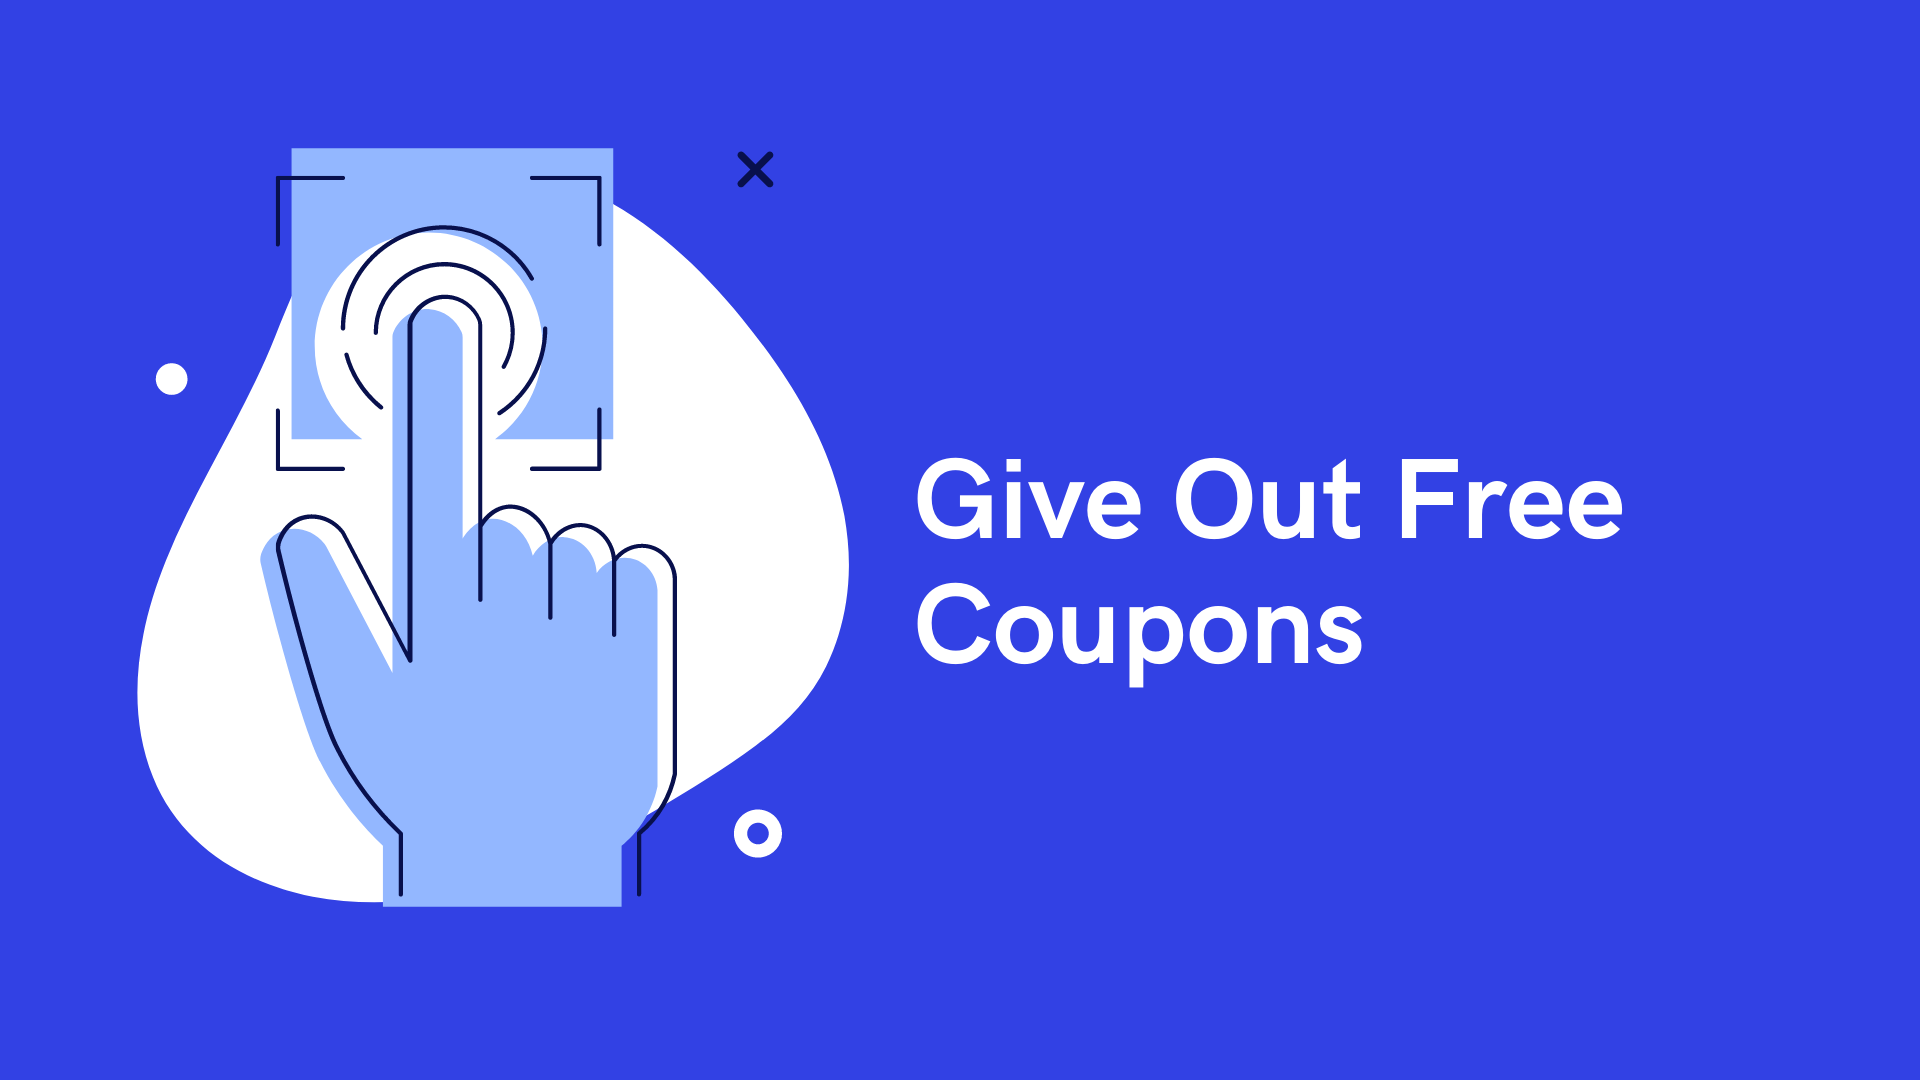 startup marketing strategy Give out free coupons